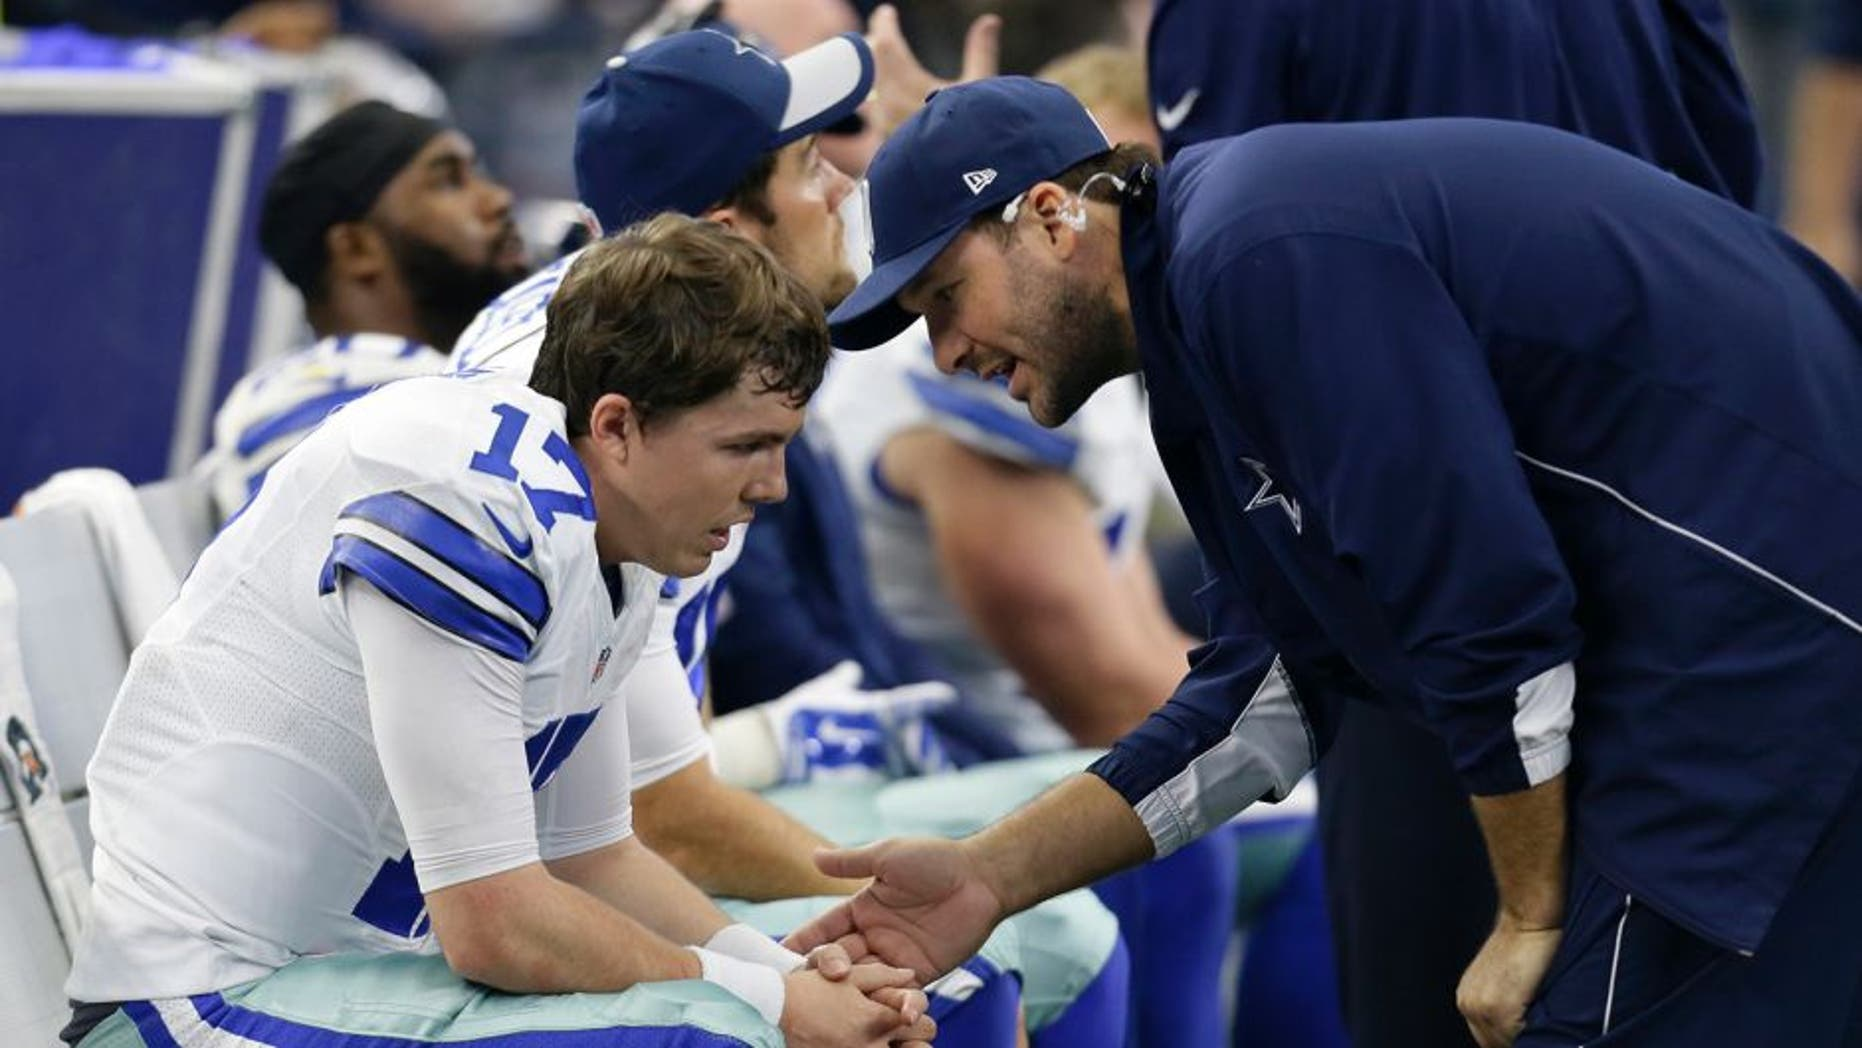 Dallas Cowboys quarterback Kellen Moore, left, talks with injured quarterback Tony Romo, right, in the second half of an NFL football game against the Washington Redskins on Sunday, Jan. 3, 2016, in Arlington, Texas. (AP Photo/Tim Sharp)